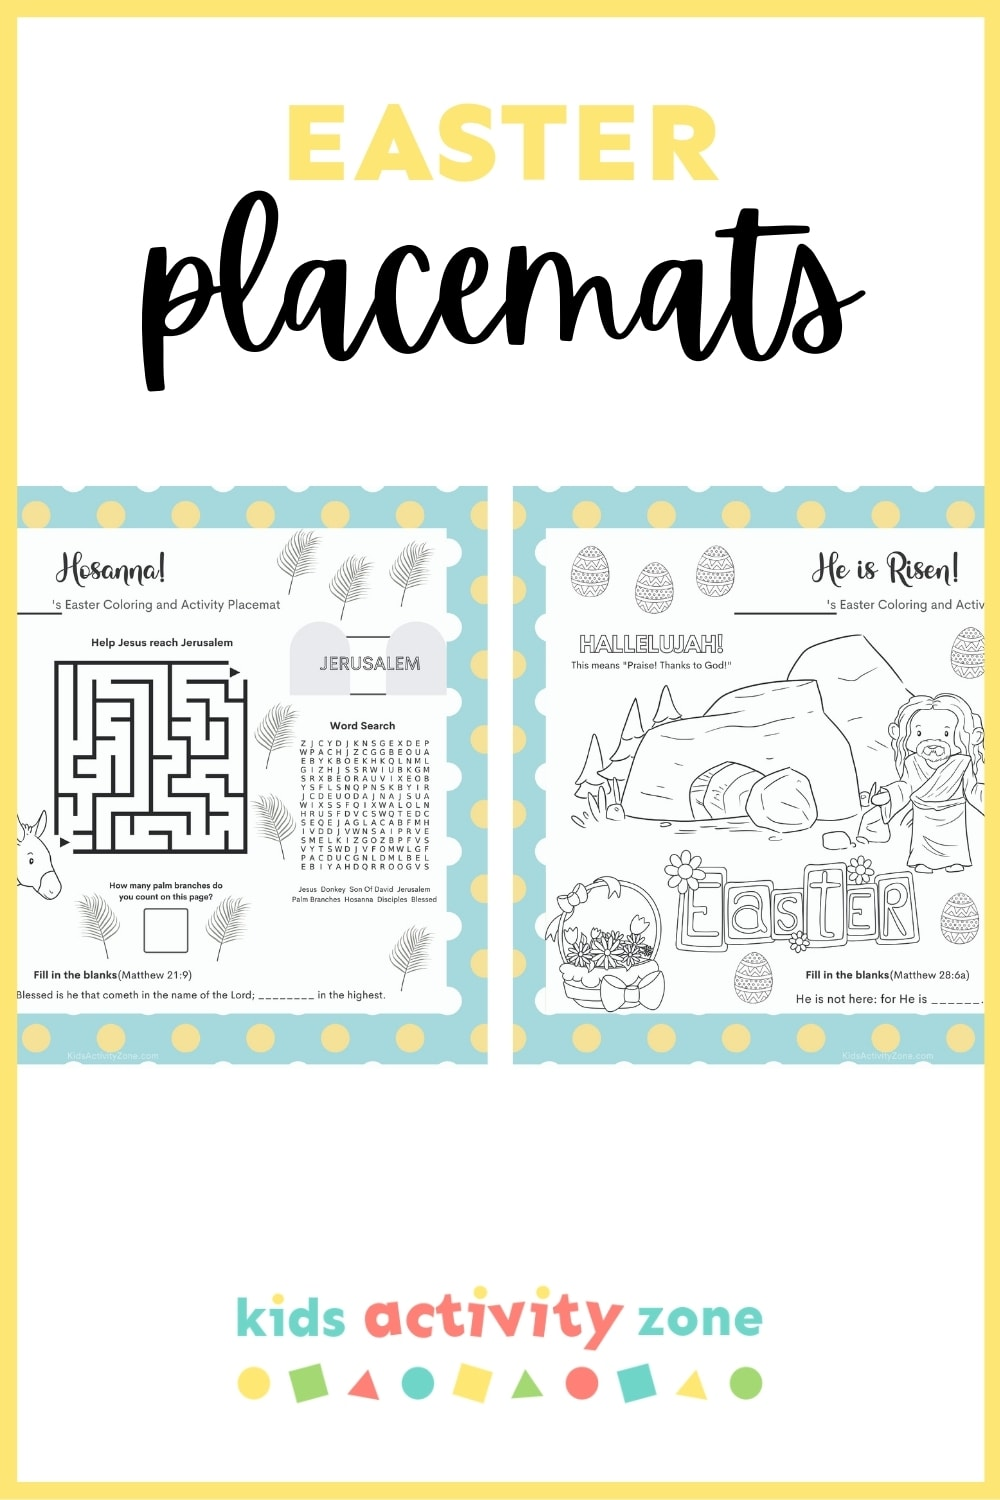 Print your own Easter Placemats that have Christian Based Activities and Coloring! Perfect Easter decor for your table that will keep kids and adults entertained during dinner.